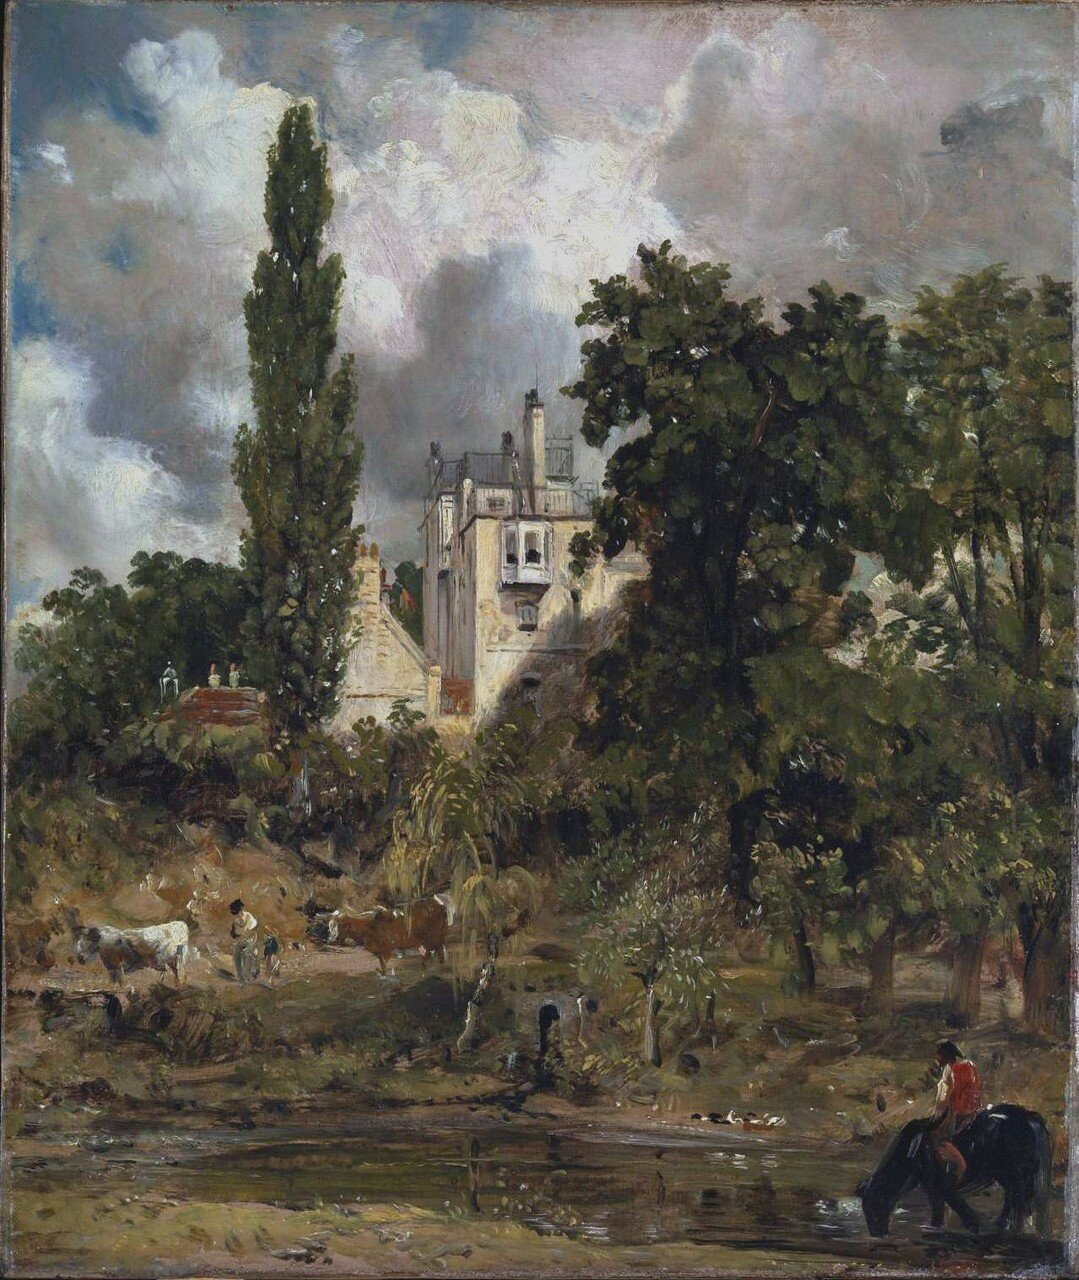 The Grove, Hampstead c.1821-2 by John Constable 1776-1837